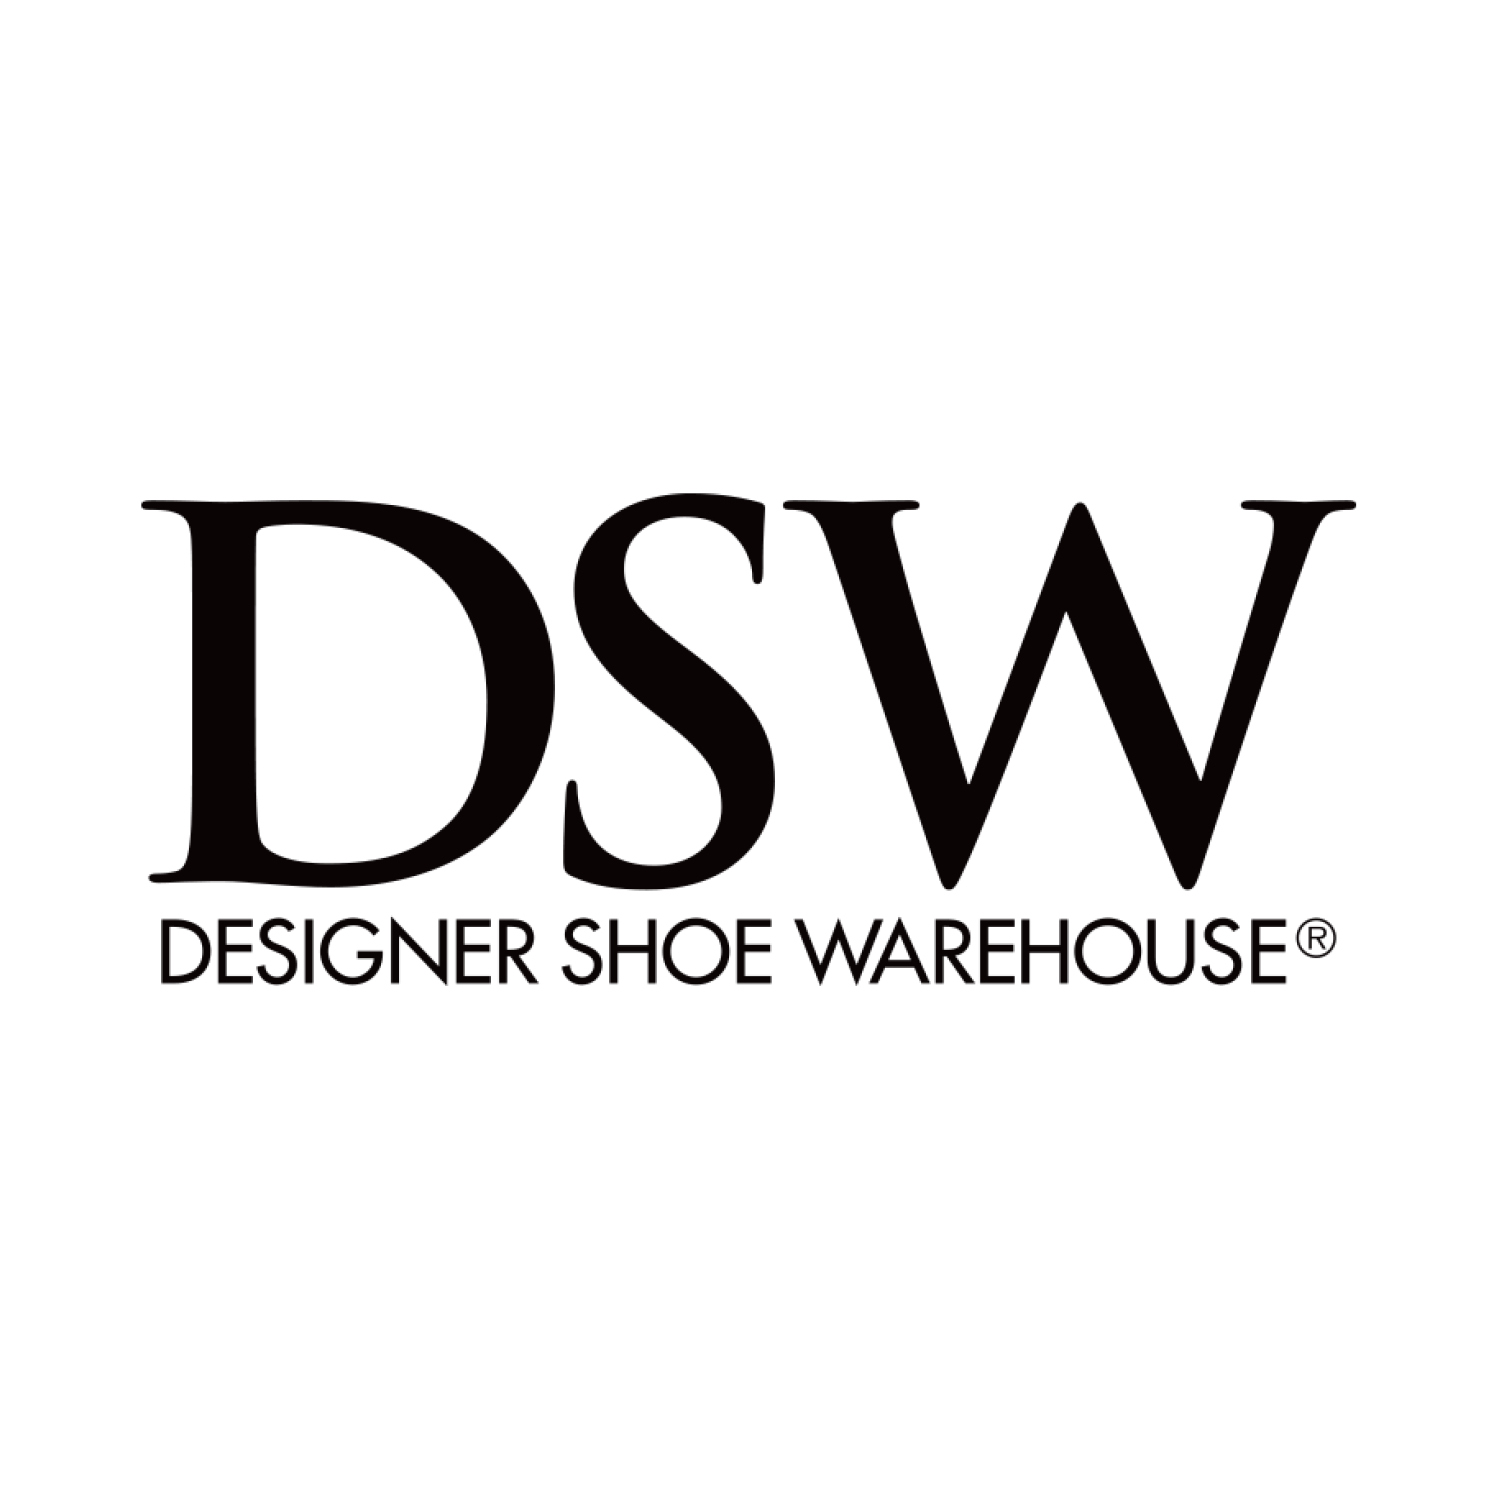 DSW Menu Sign - Price Points: $49.99 - FR